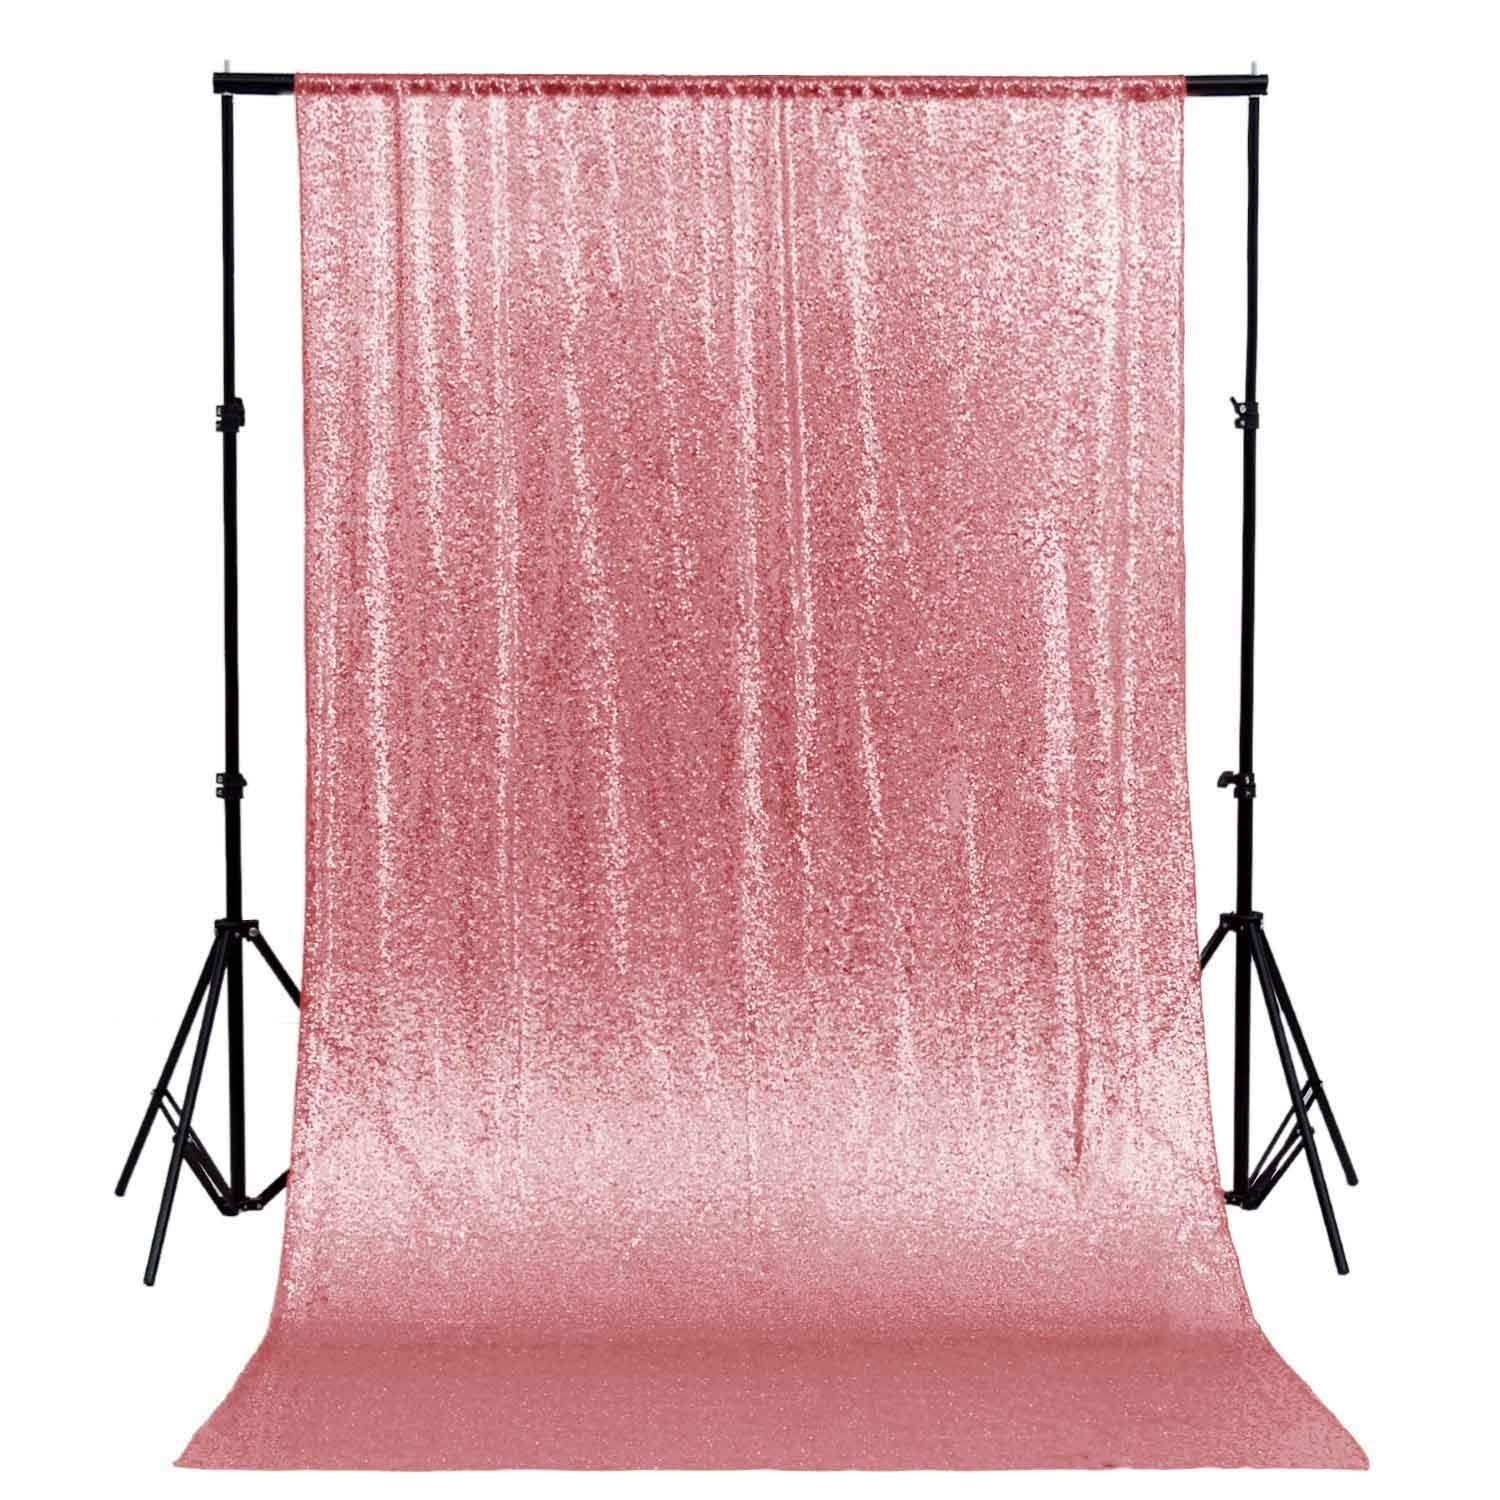 DUOBAO Sequin Backdrop Curtain 4FTx6FT Fuchsia Pink Glitter Background Fuchsia Pink Sequin Photo Backdrop Prom Party Decor~0613 by DUOBAO